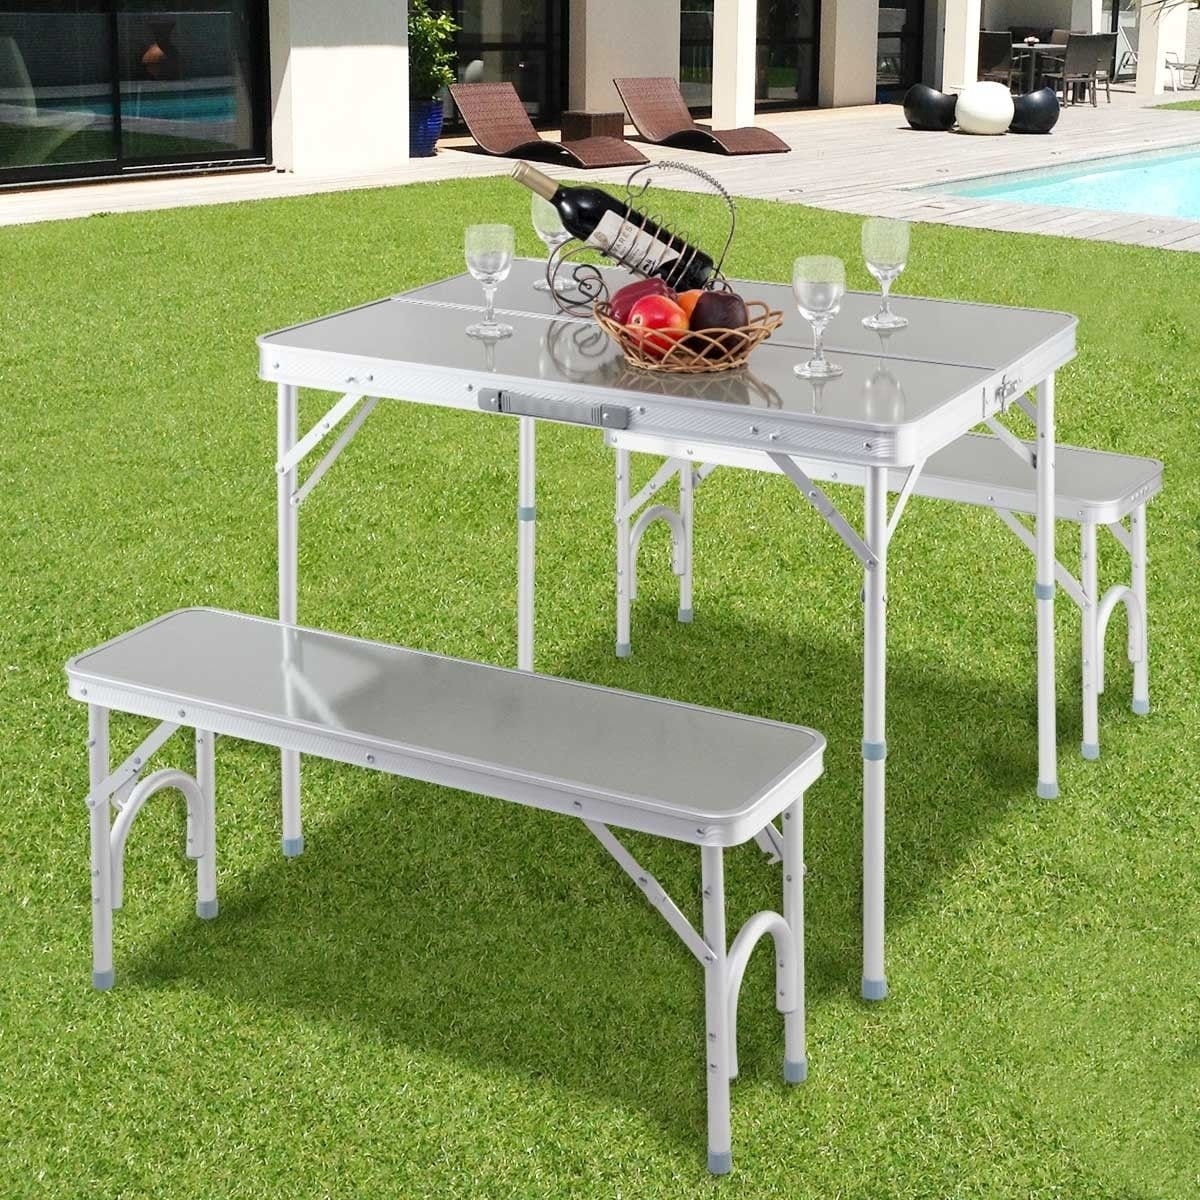 Costway Aluminum Portable Folding Picnic Table Camping Suitcase W Bench 4 Seat Outdoor On Free Shipping Today 18797914